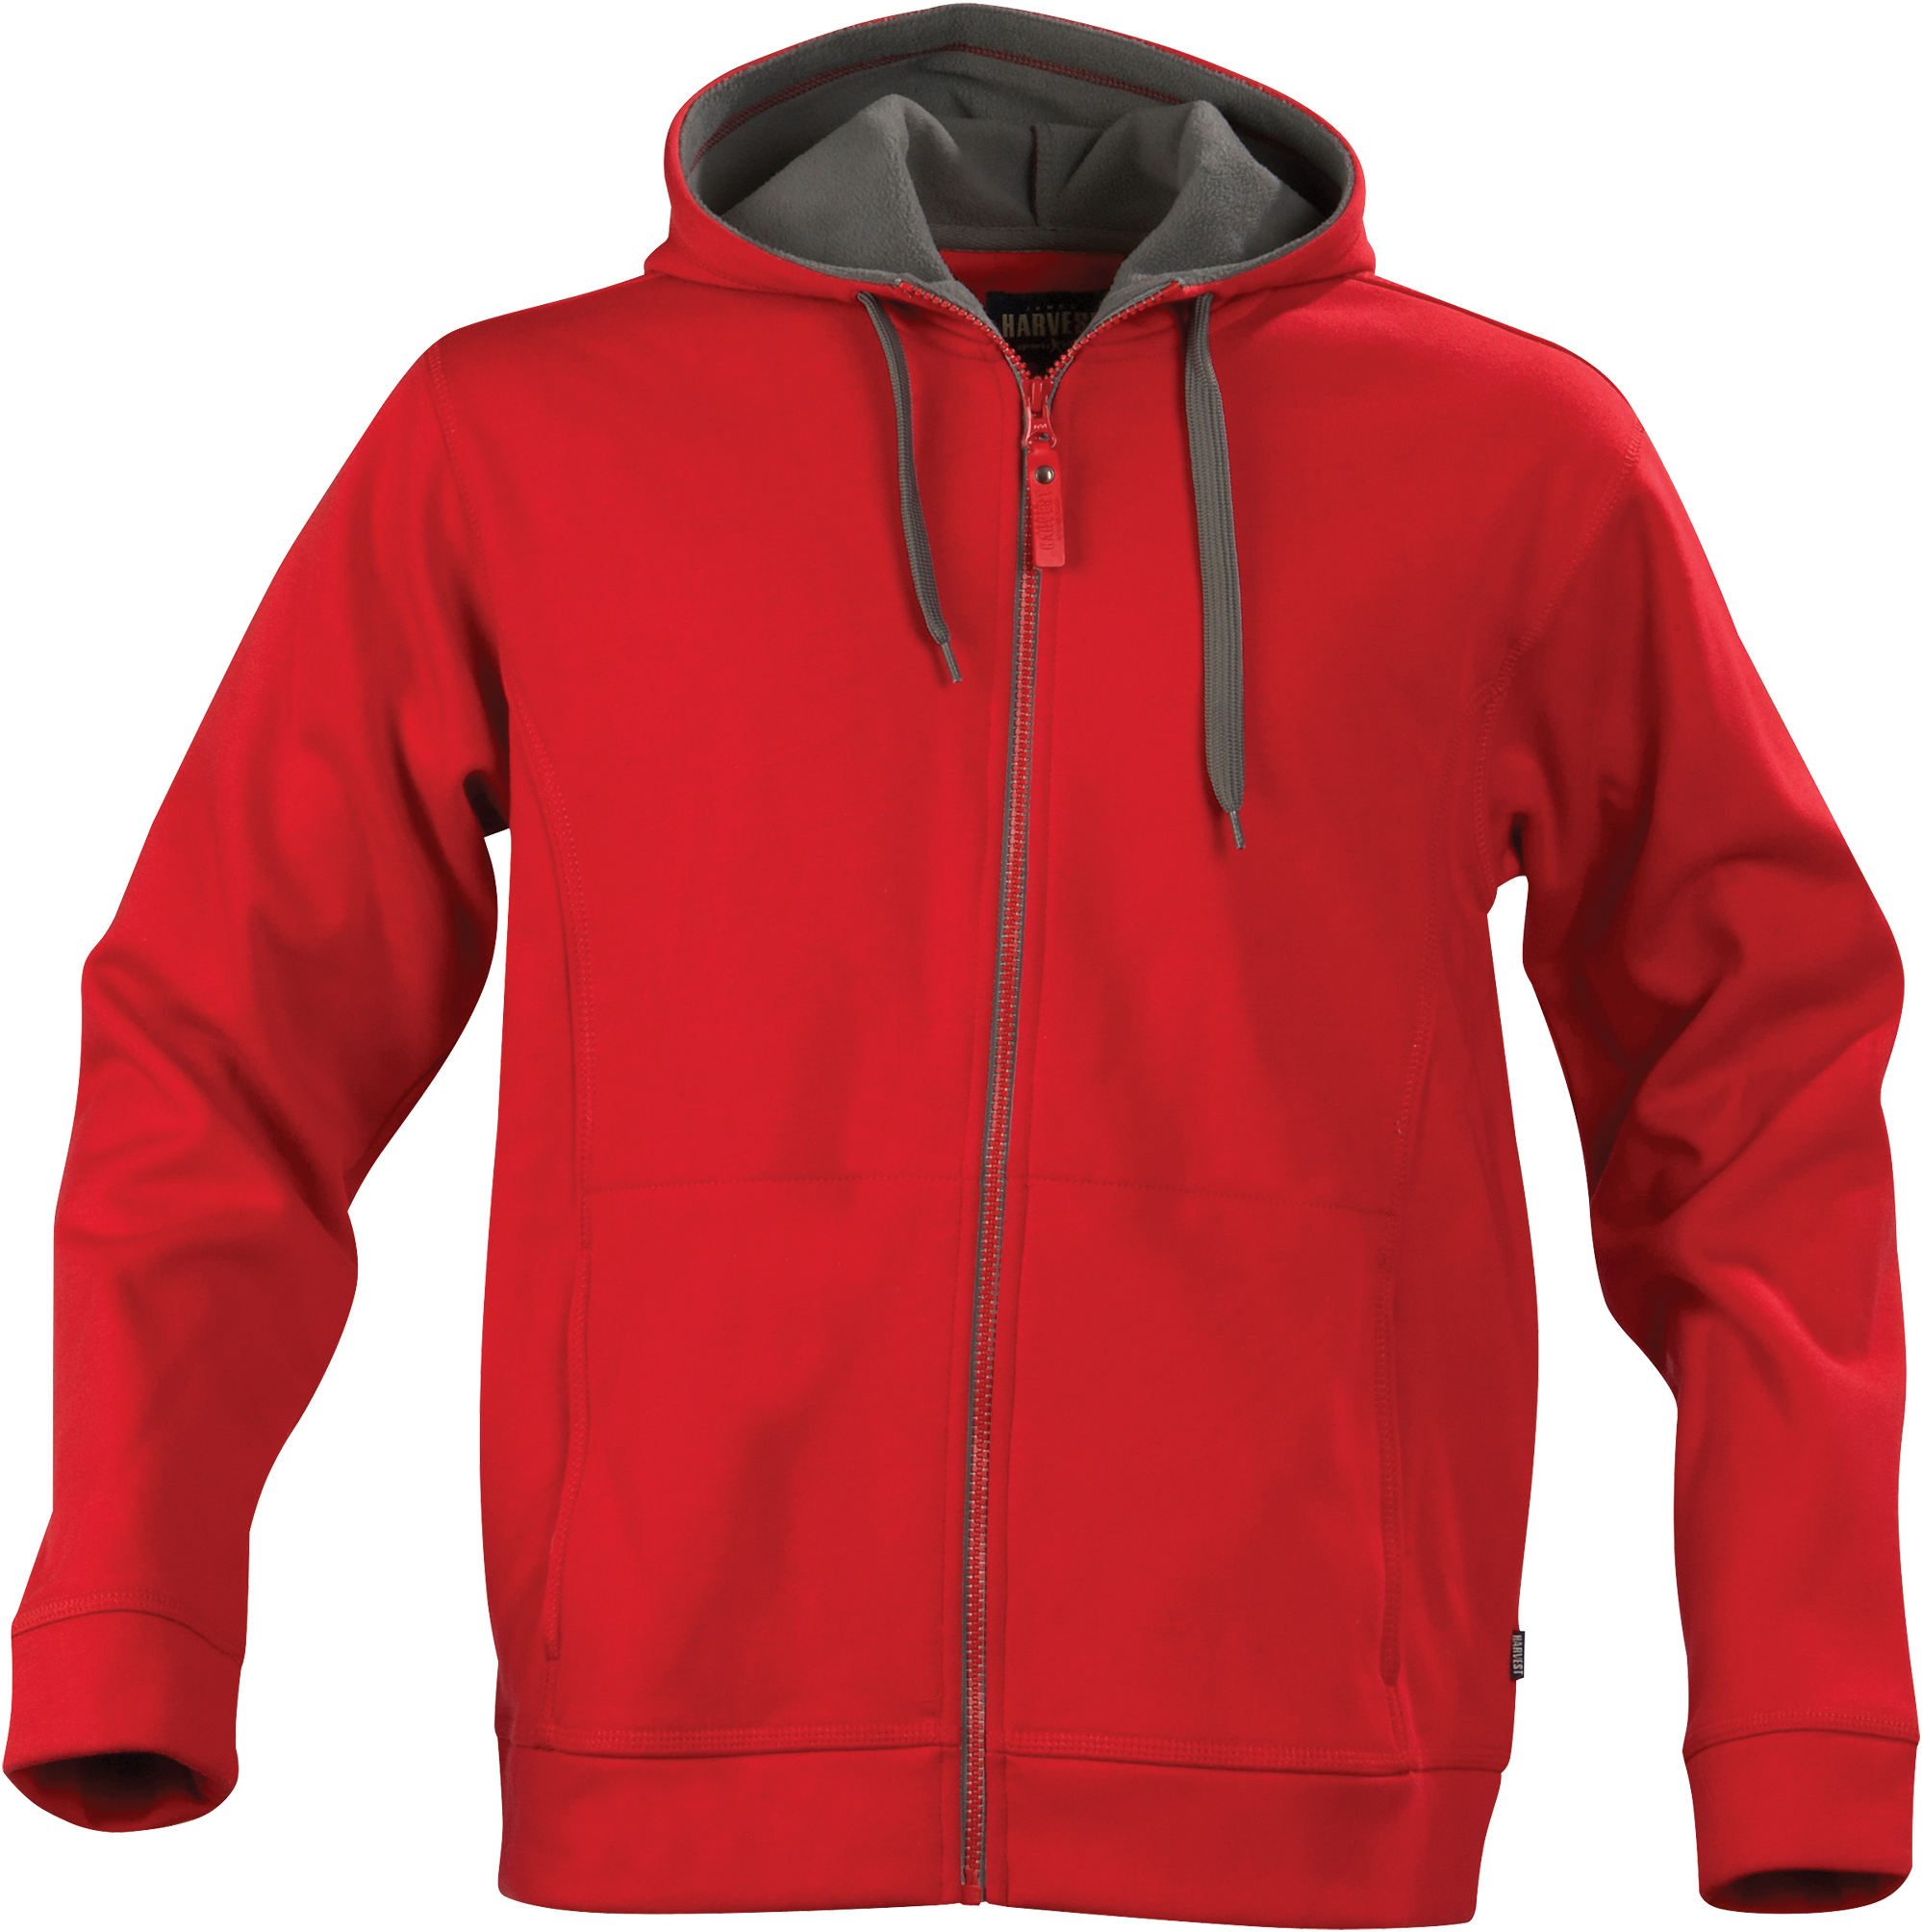 Mens Prescott Hoodie in 400 Red